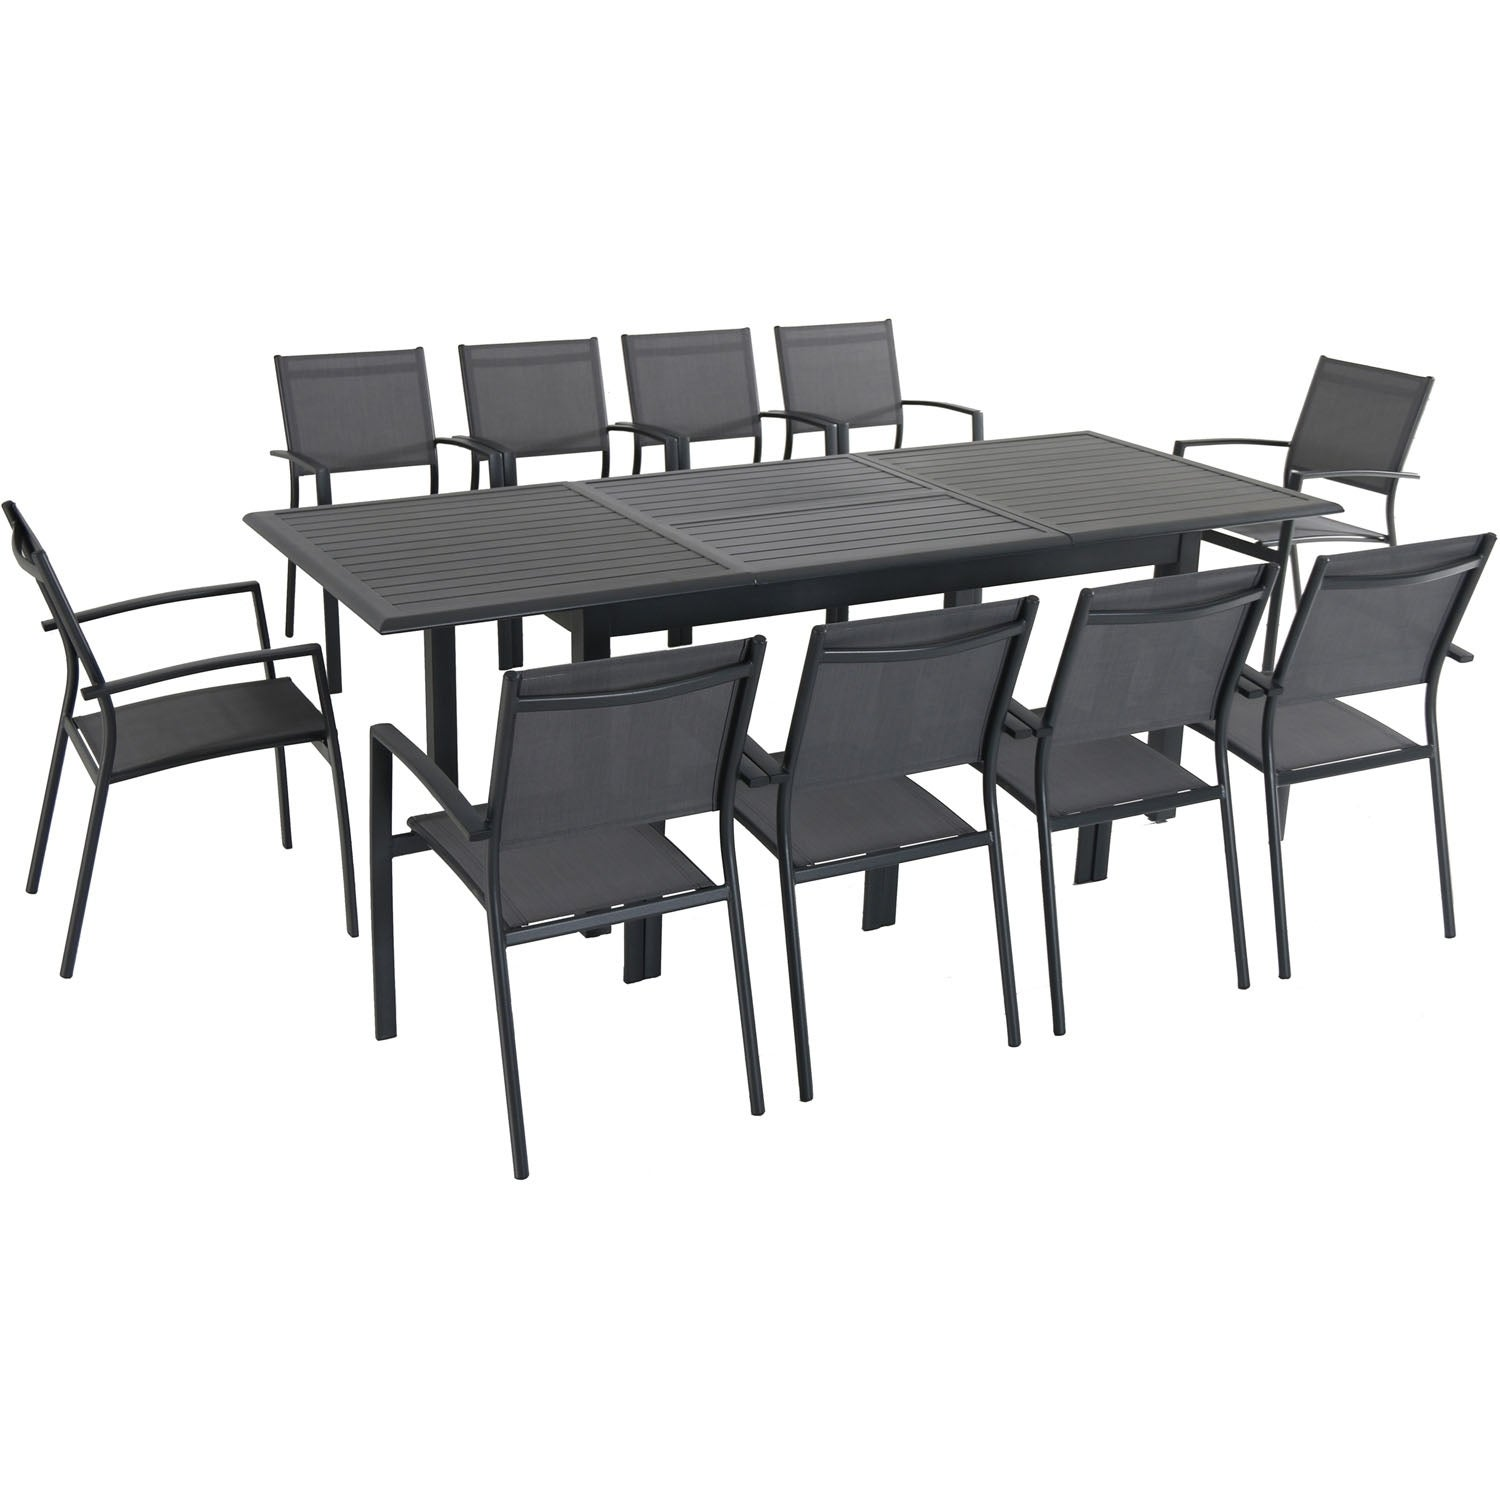 Cambridge Turner 11-Piece Expandable Dining Set with 10 Sling Dining Chairs and a 40 x 94 Table